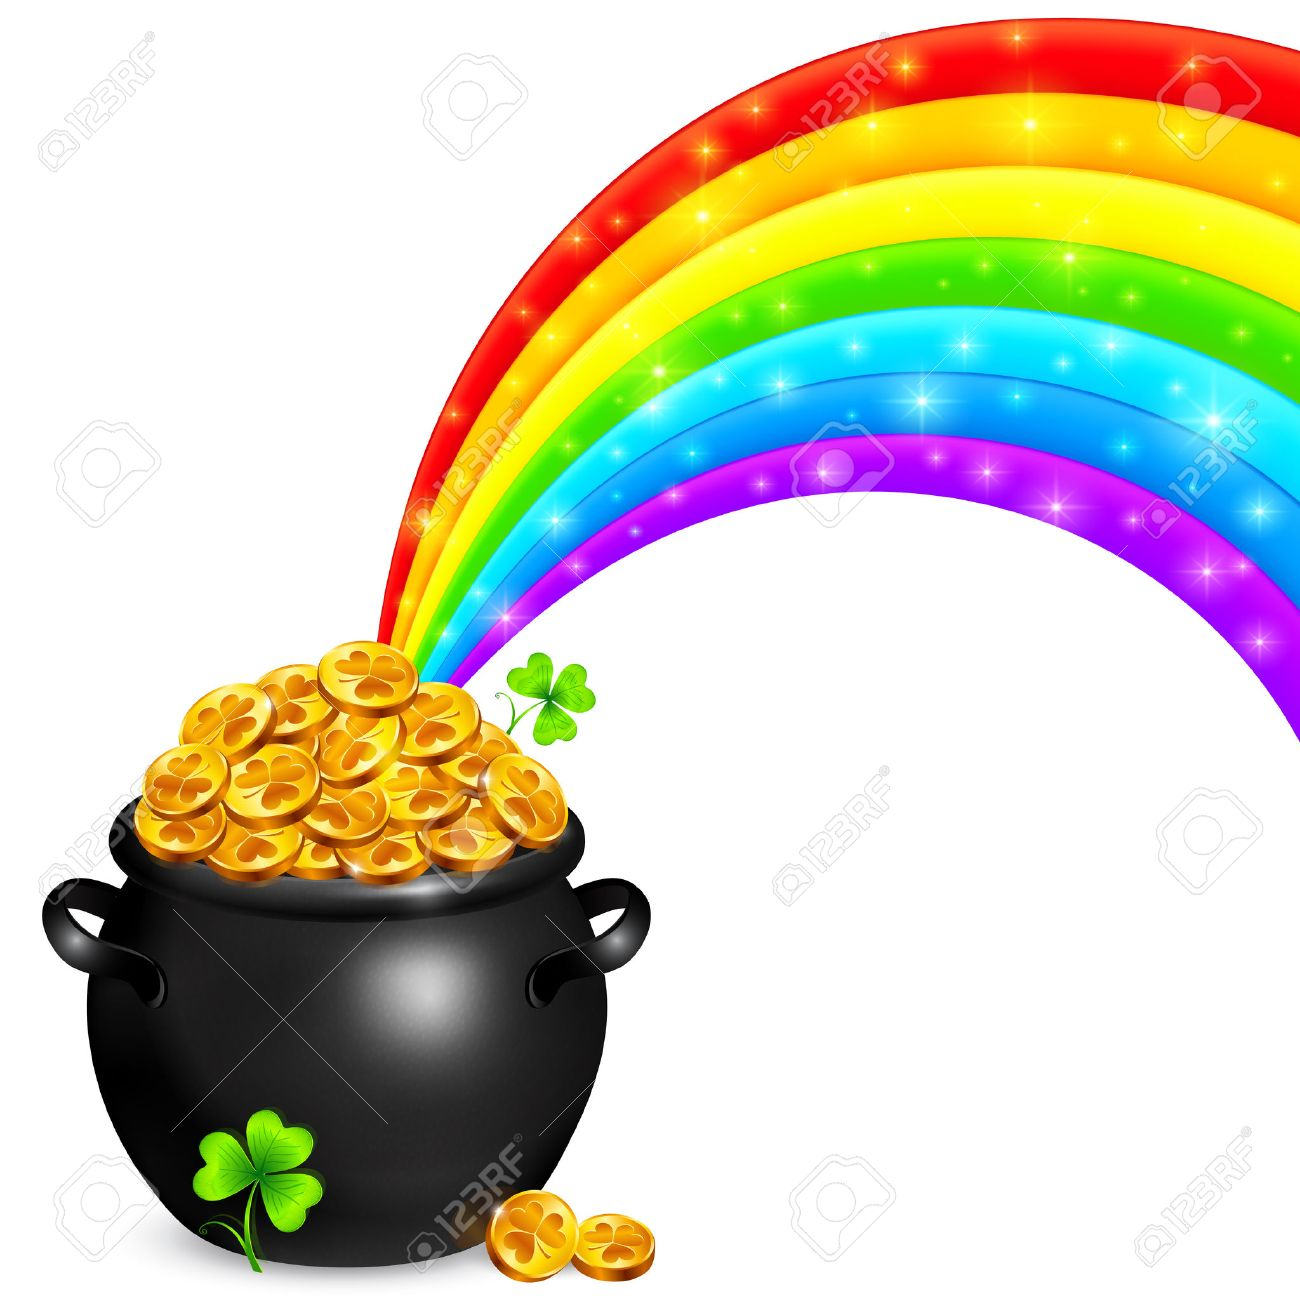 1300x1300 Nobby Design Rainbow And Pot Of Gold Clipart Clip Art Image